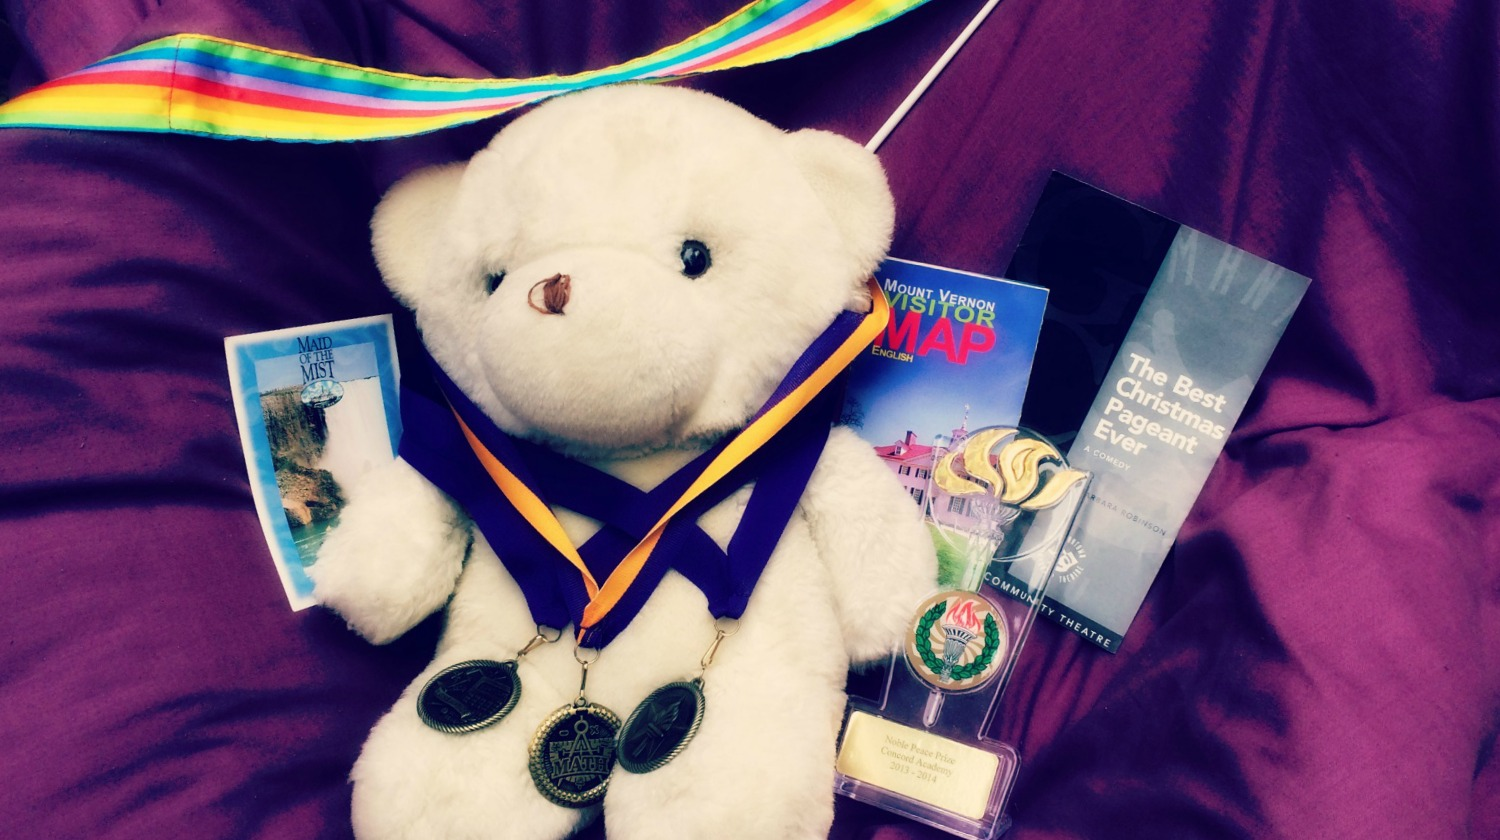 What to do with our children's mementos